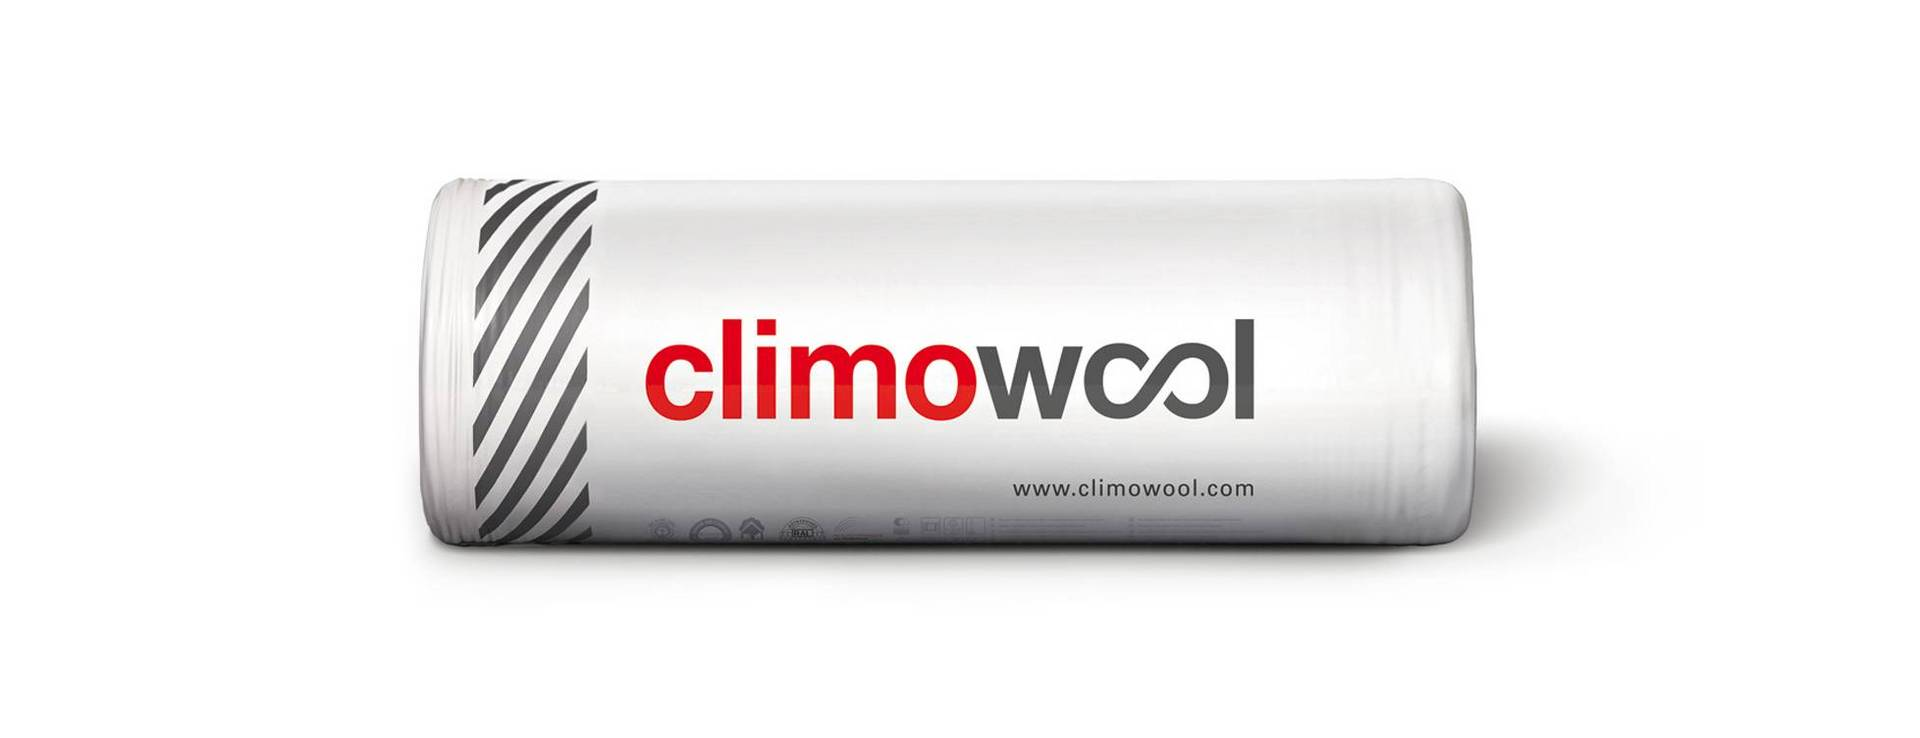 Verpackung der Climowool-Glasfaserrolle